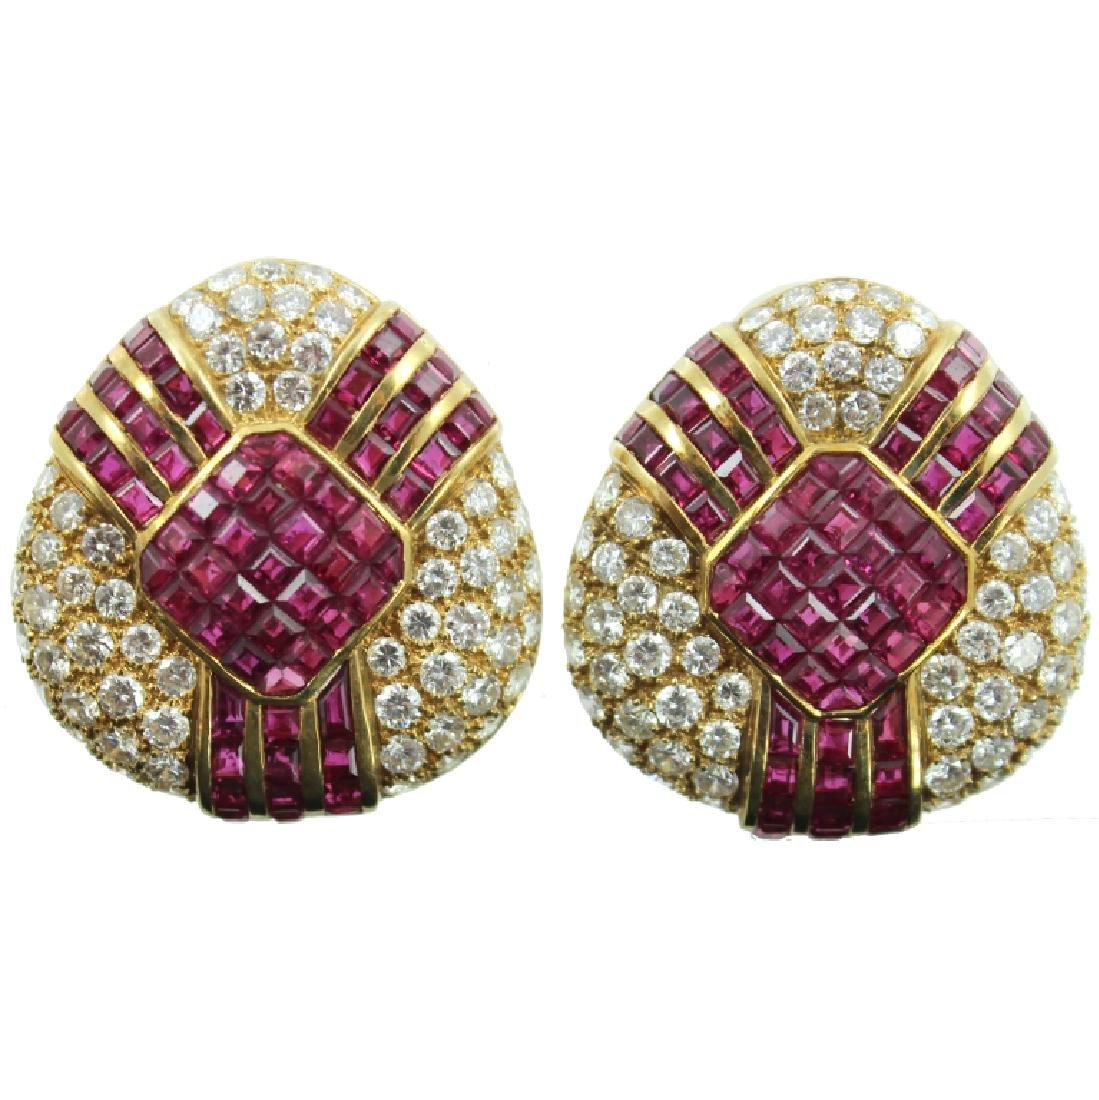 18K DIAMOND & RUBY EARRINGS